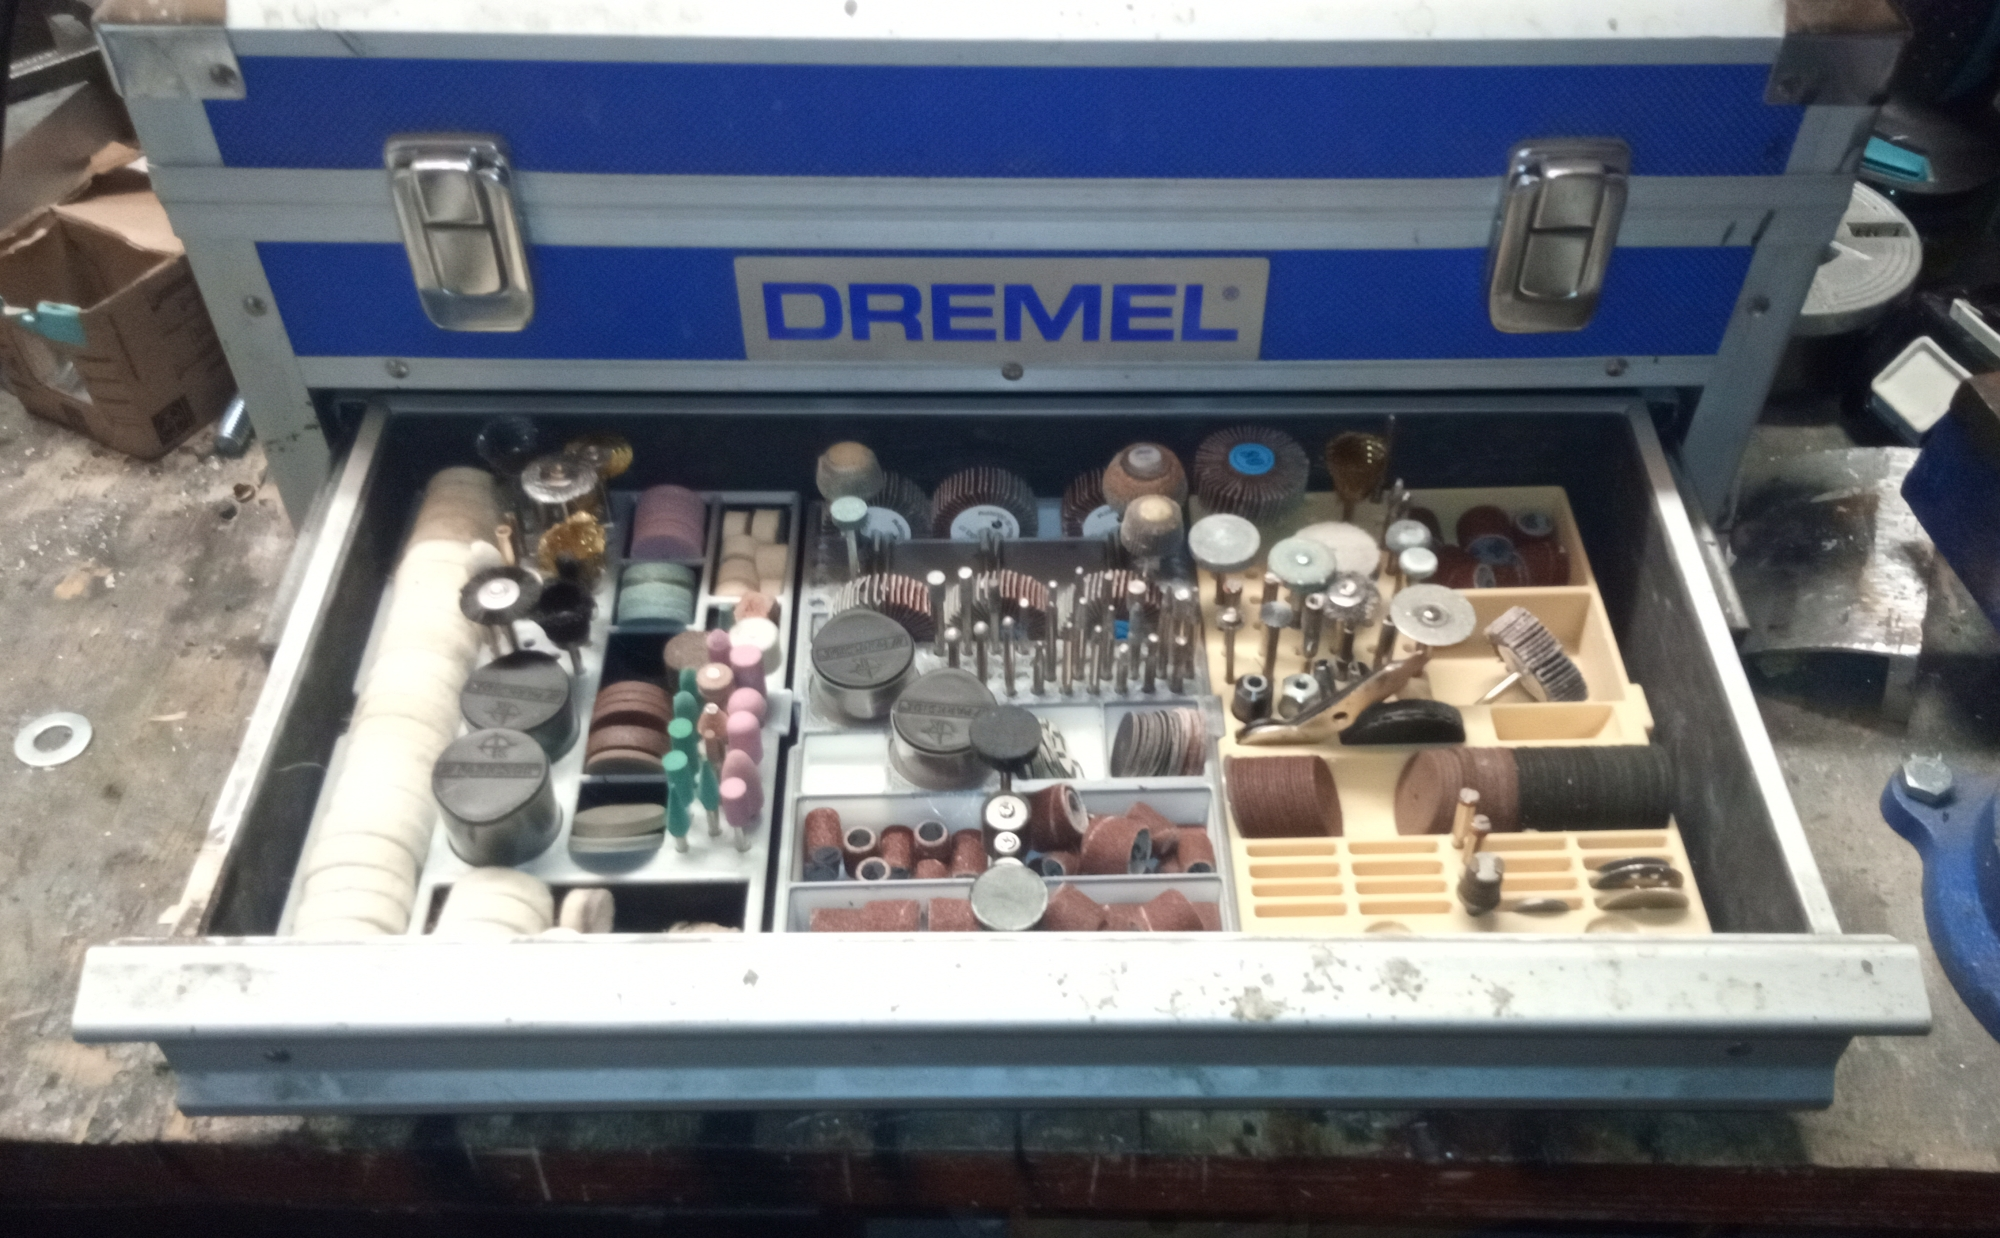 Dremel Tool Bit Organizer for Platin Toolbox or compatible Rotary Tools alike